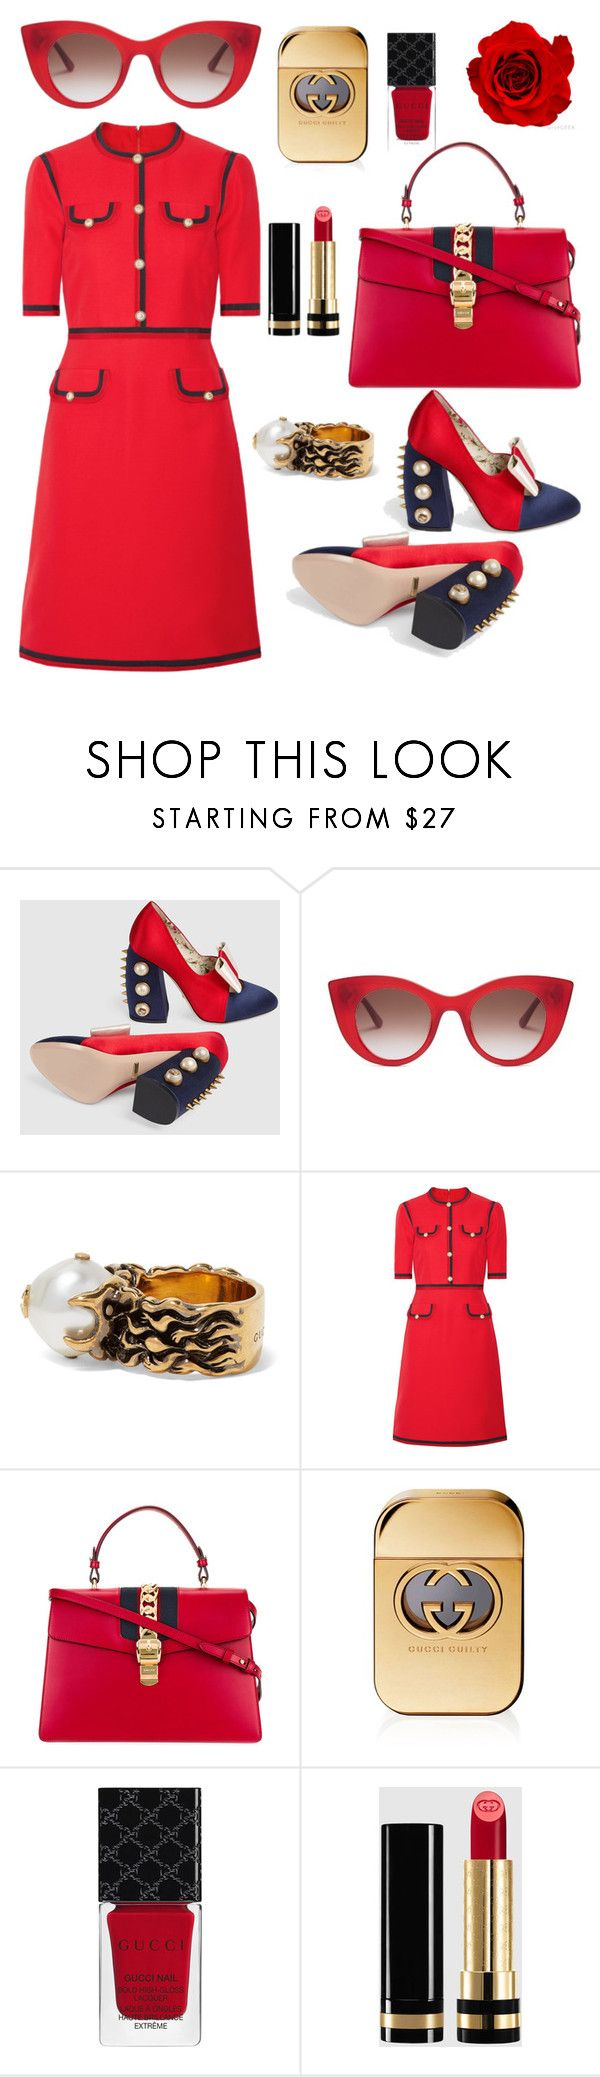 """""""Lady in red"""" by ana-maria-punga ❤ liked on Polyvore featuring Gucci and Thierry Lasry"""